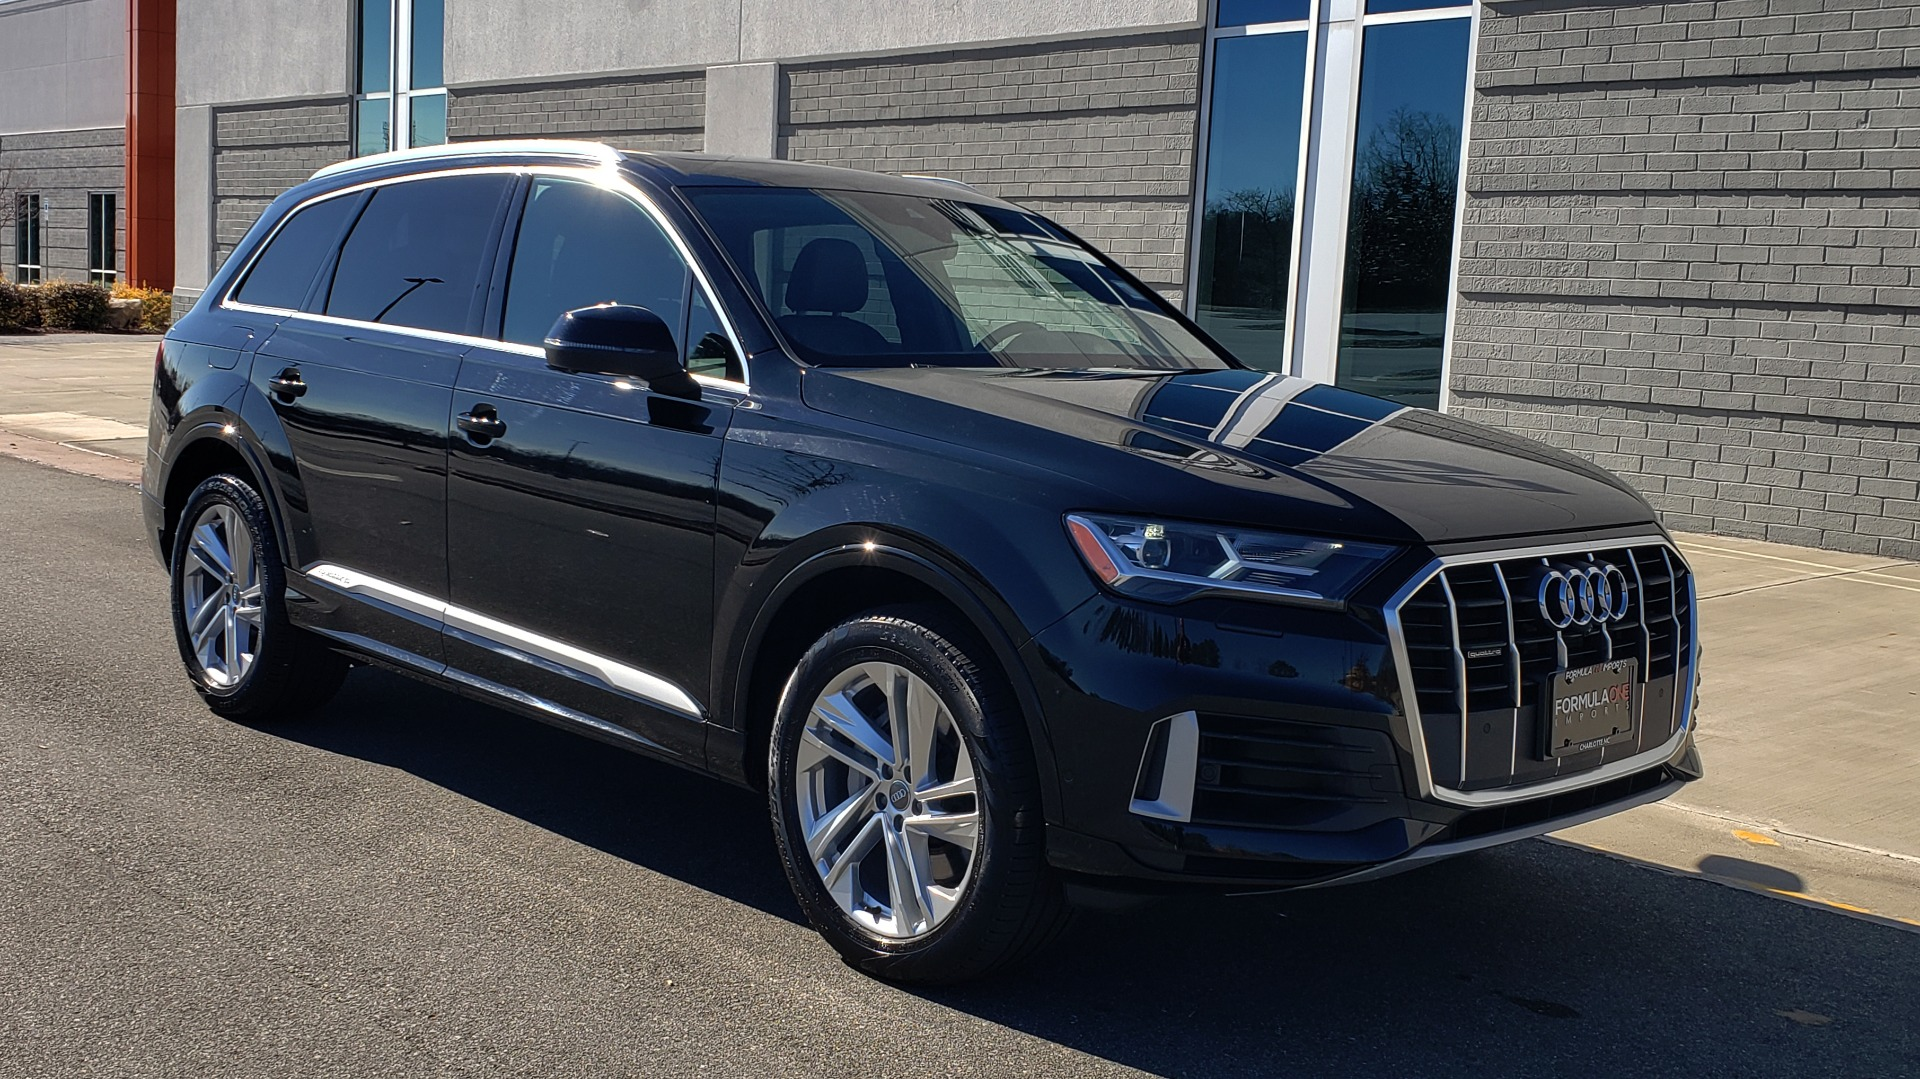 Used 2020 Audi Q7 PREMIUM PLUS / NAV / SUNROOF / 3-ROW / REARVIEW for sale $50,695 at Formula Imports in Charlotte NC 28227 6